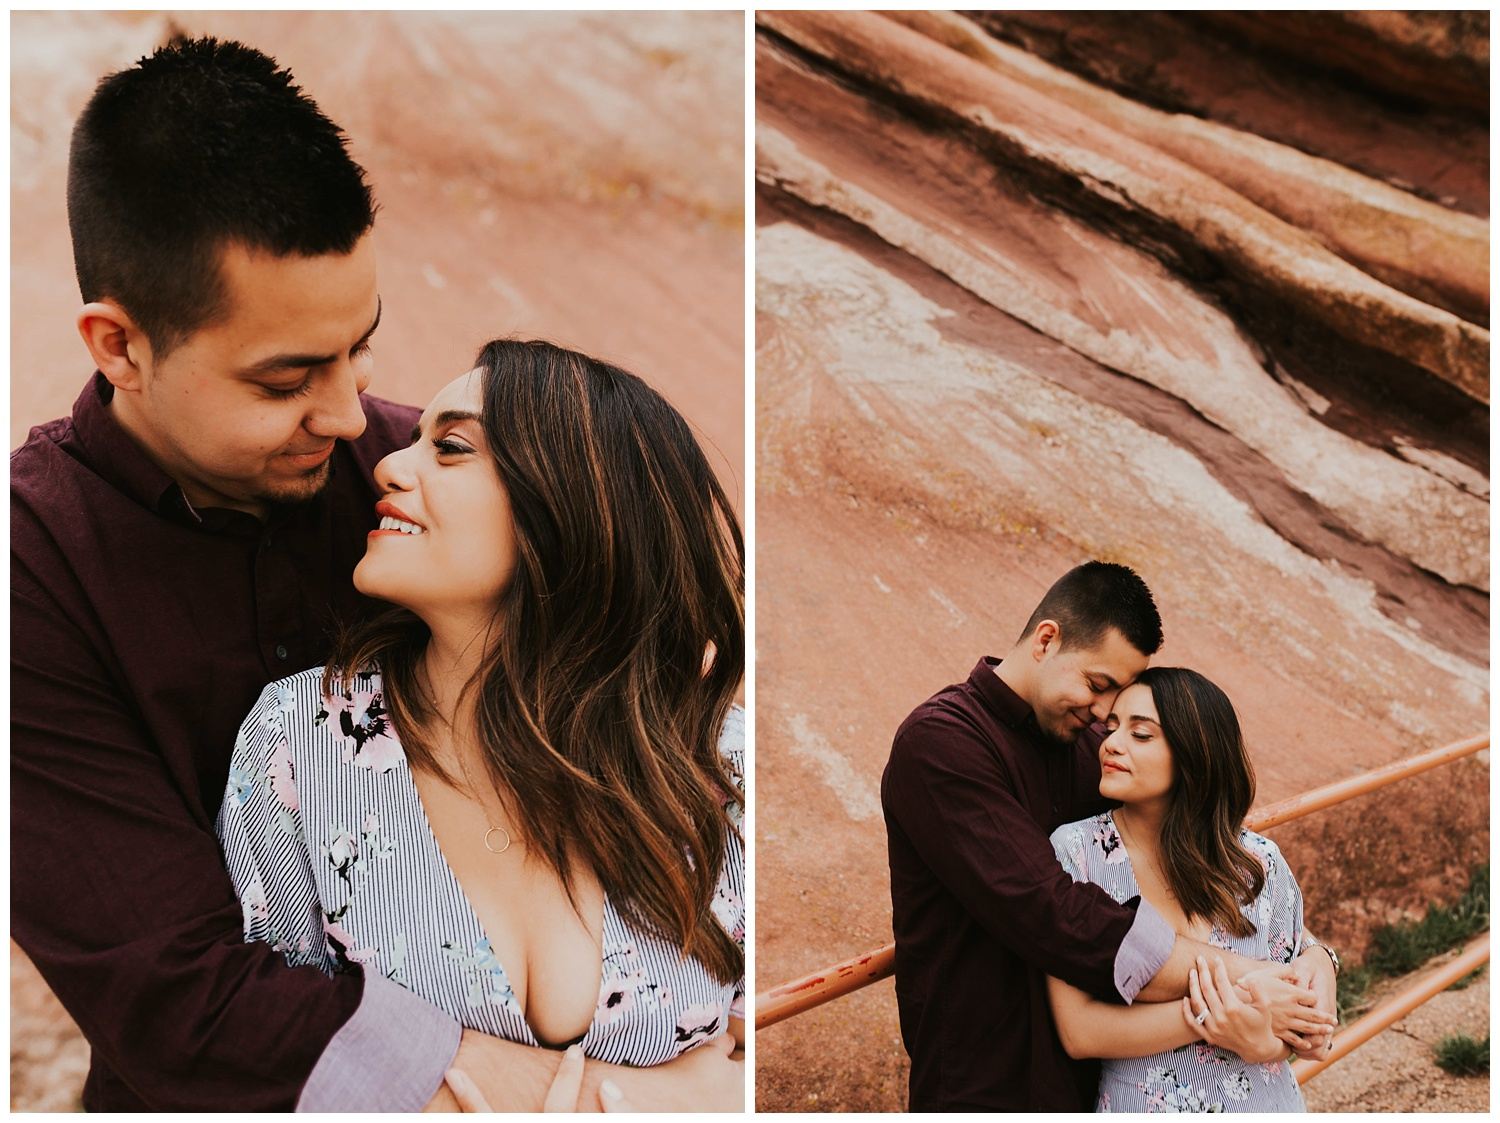 Meredith_Soy_Photography_Red_Rocks_Photographer_0001.jpg